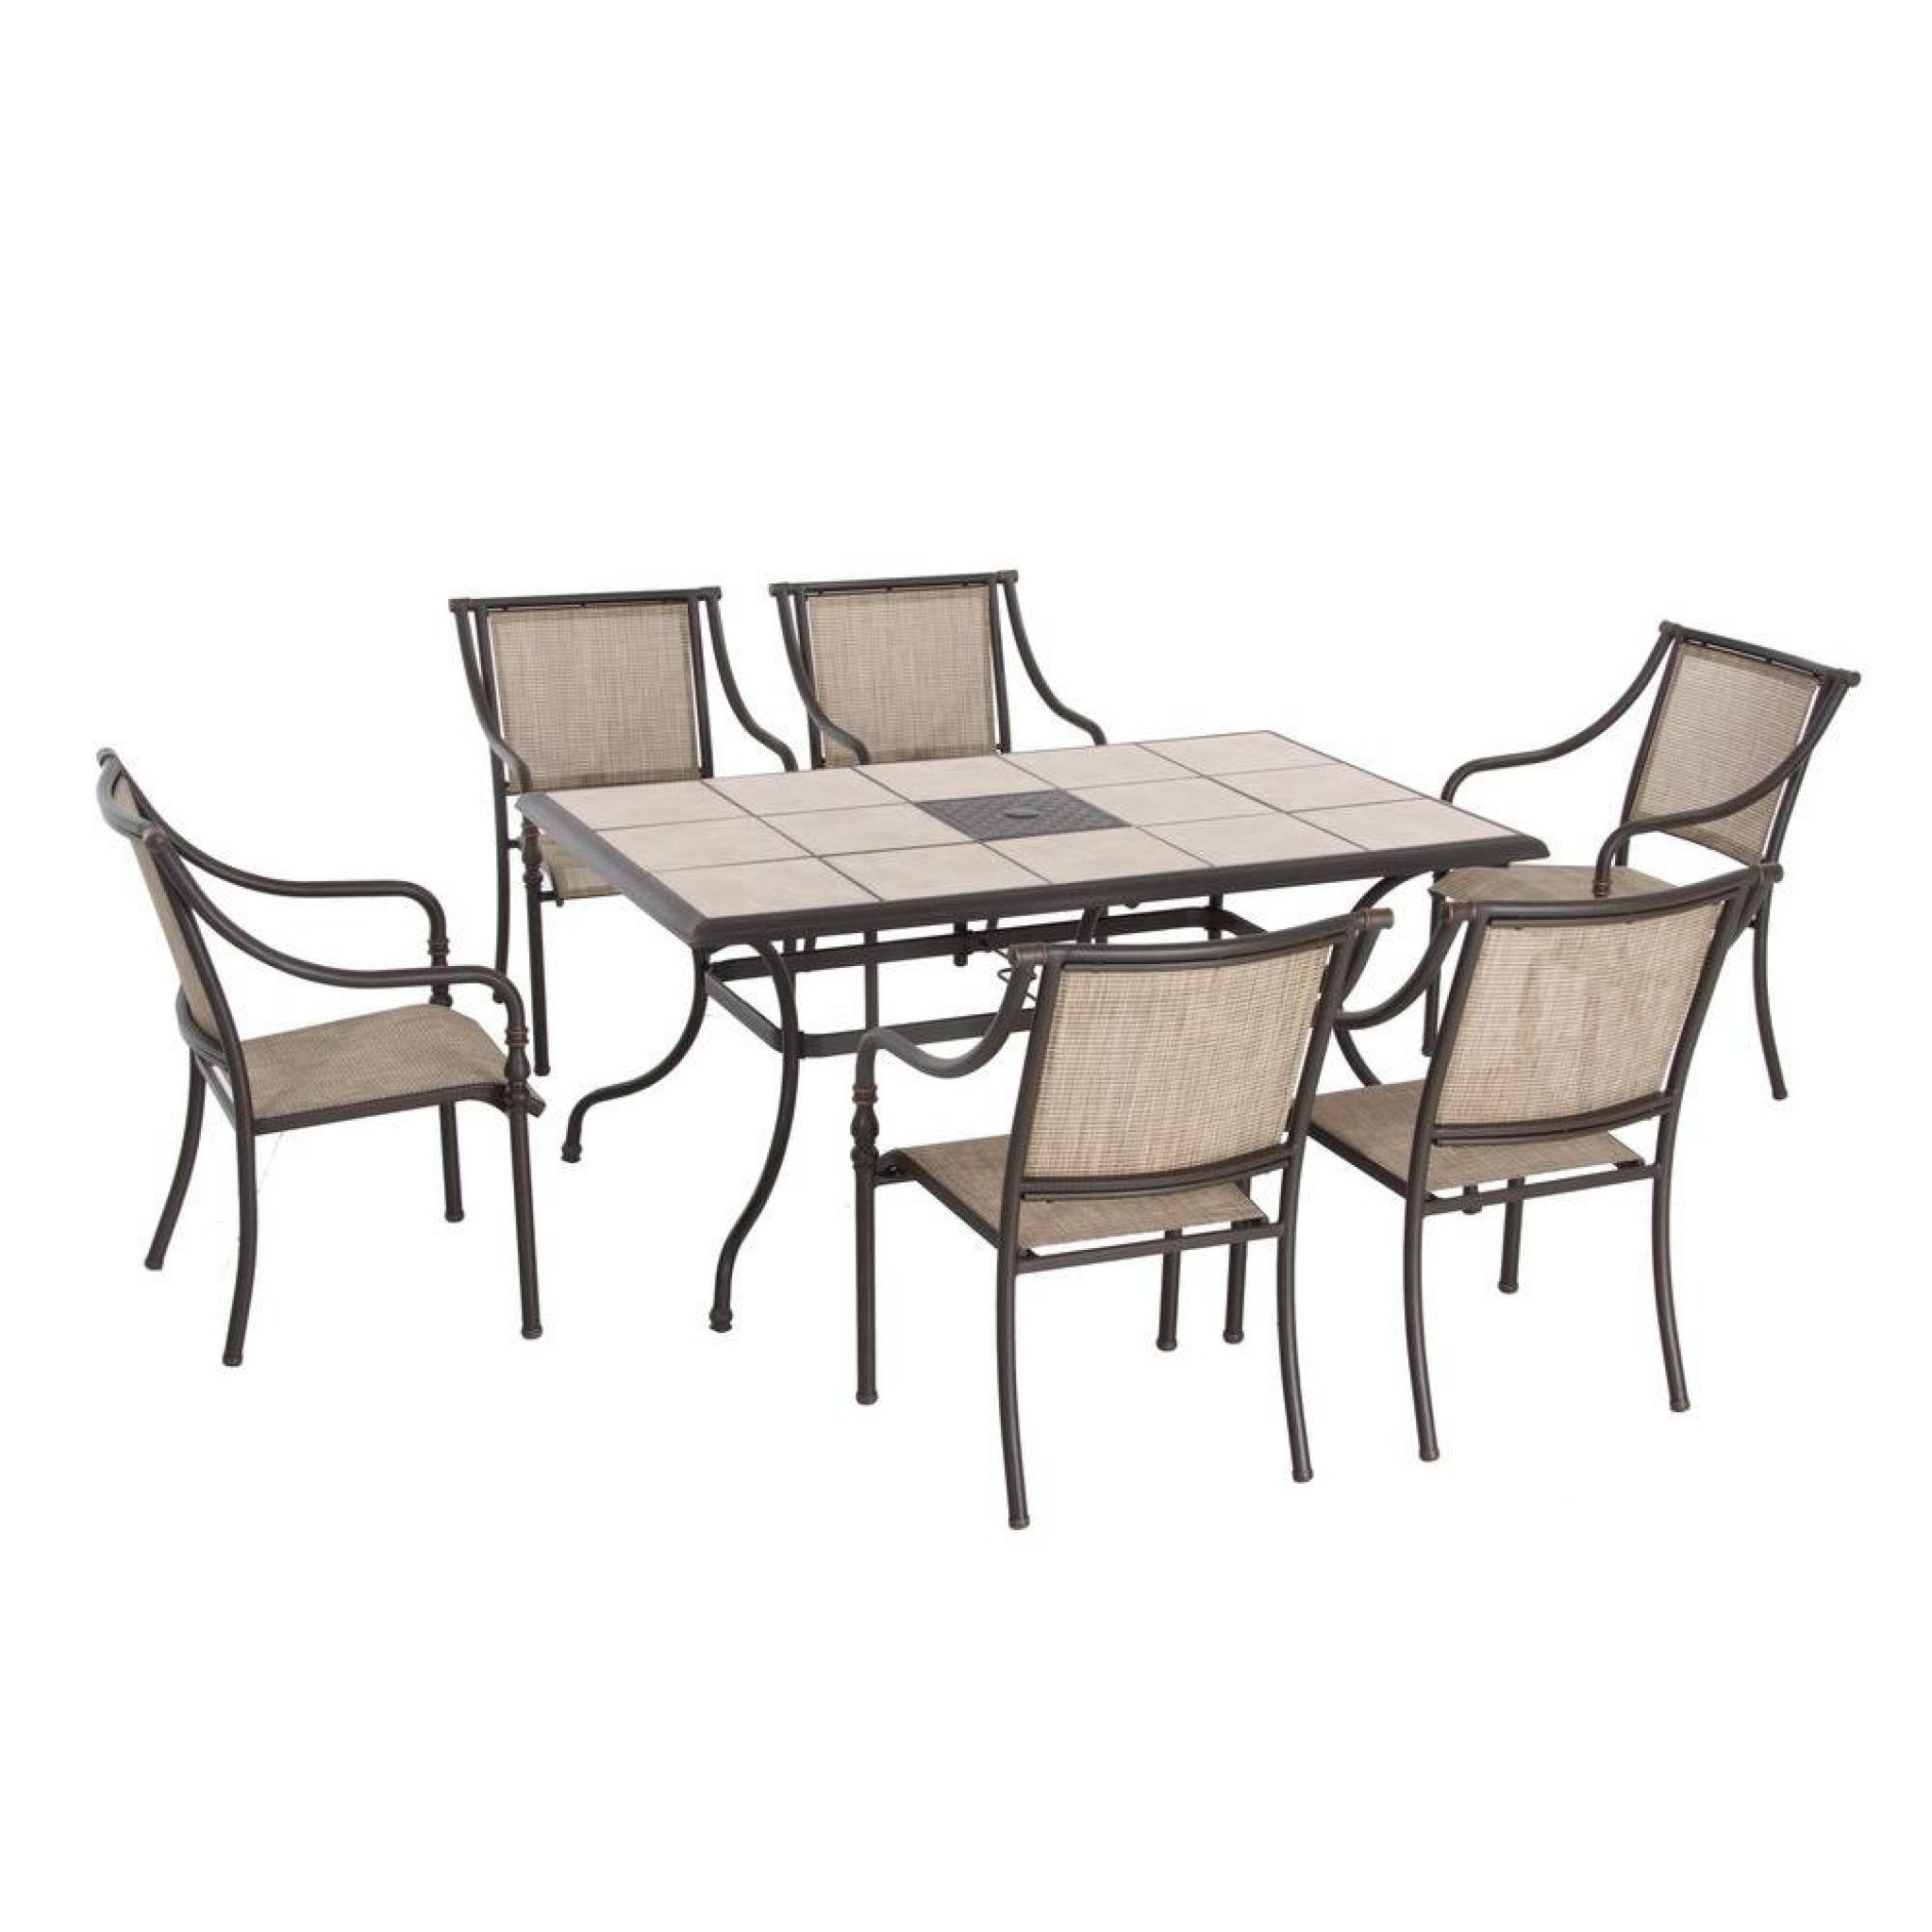 Dining Chair Covers Home Depot Your Inc Coupon Code Pin By Annora On Interior In 2018 Pinterest